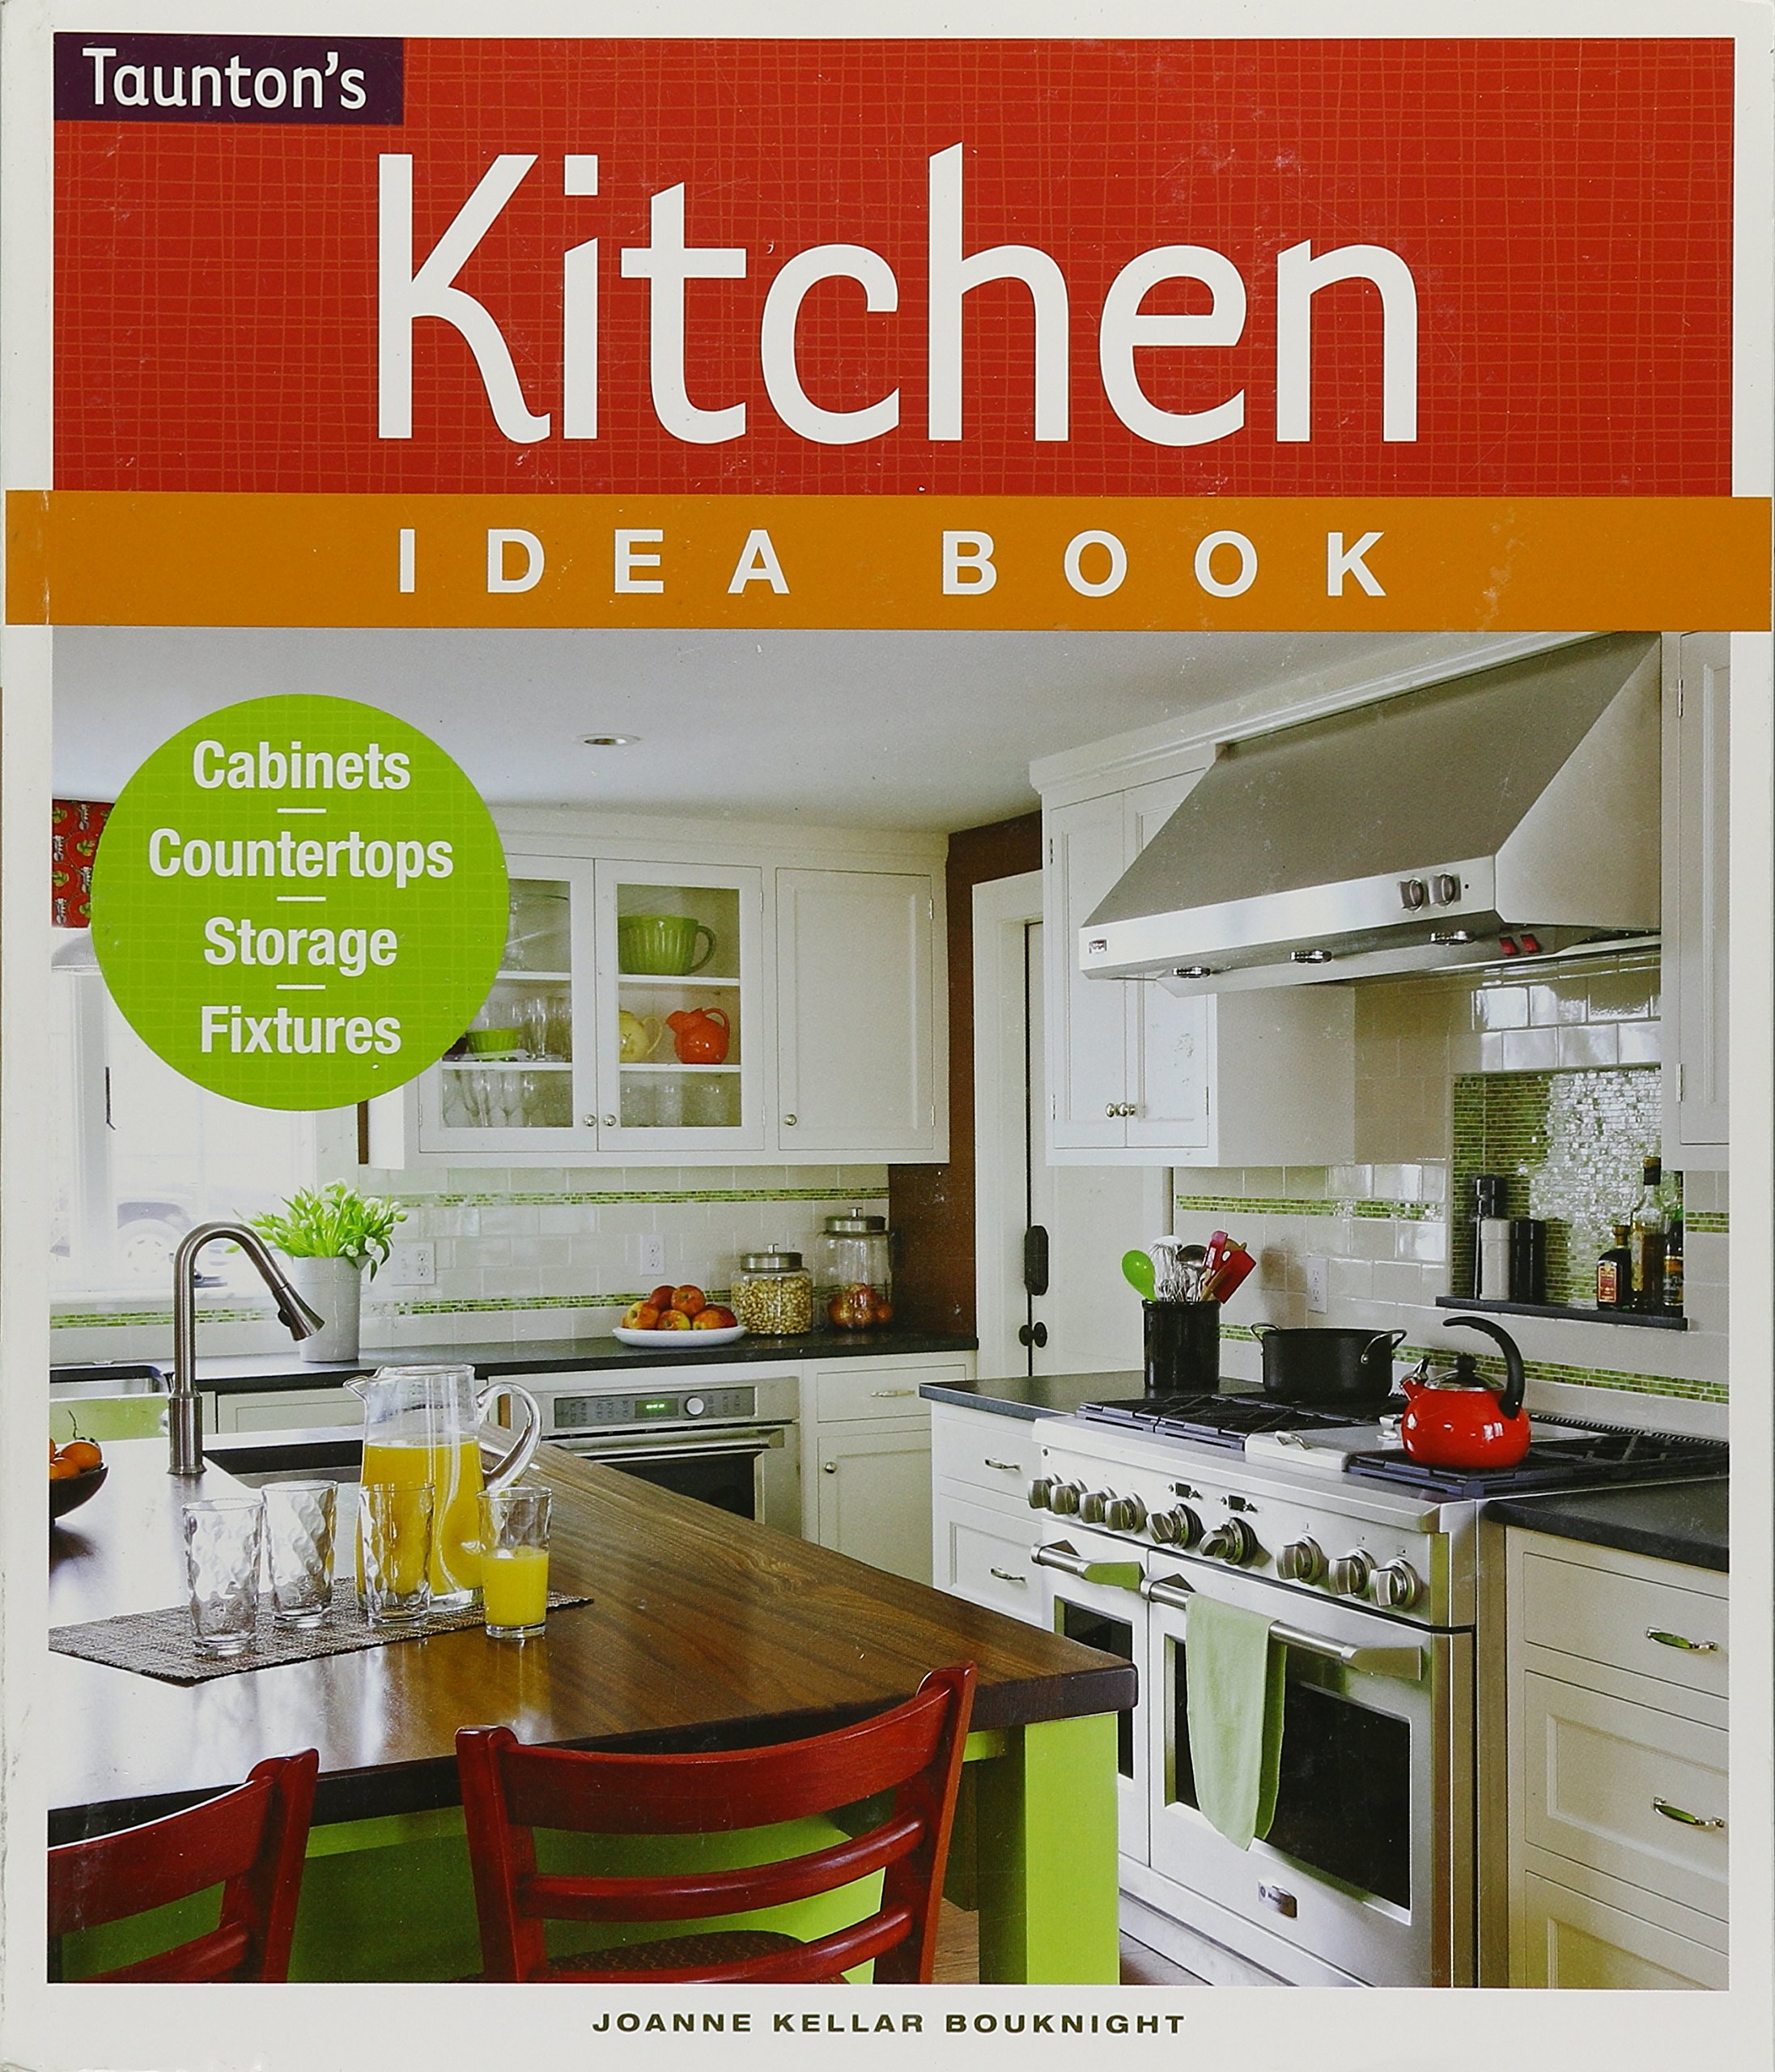 Kitchen Idea Book Taunton Home Idea Books Joanne Kellar Bouknight